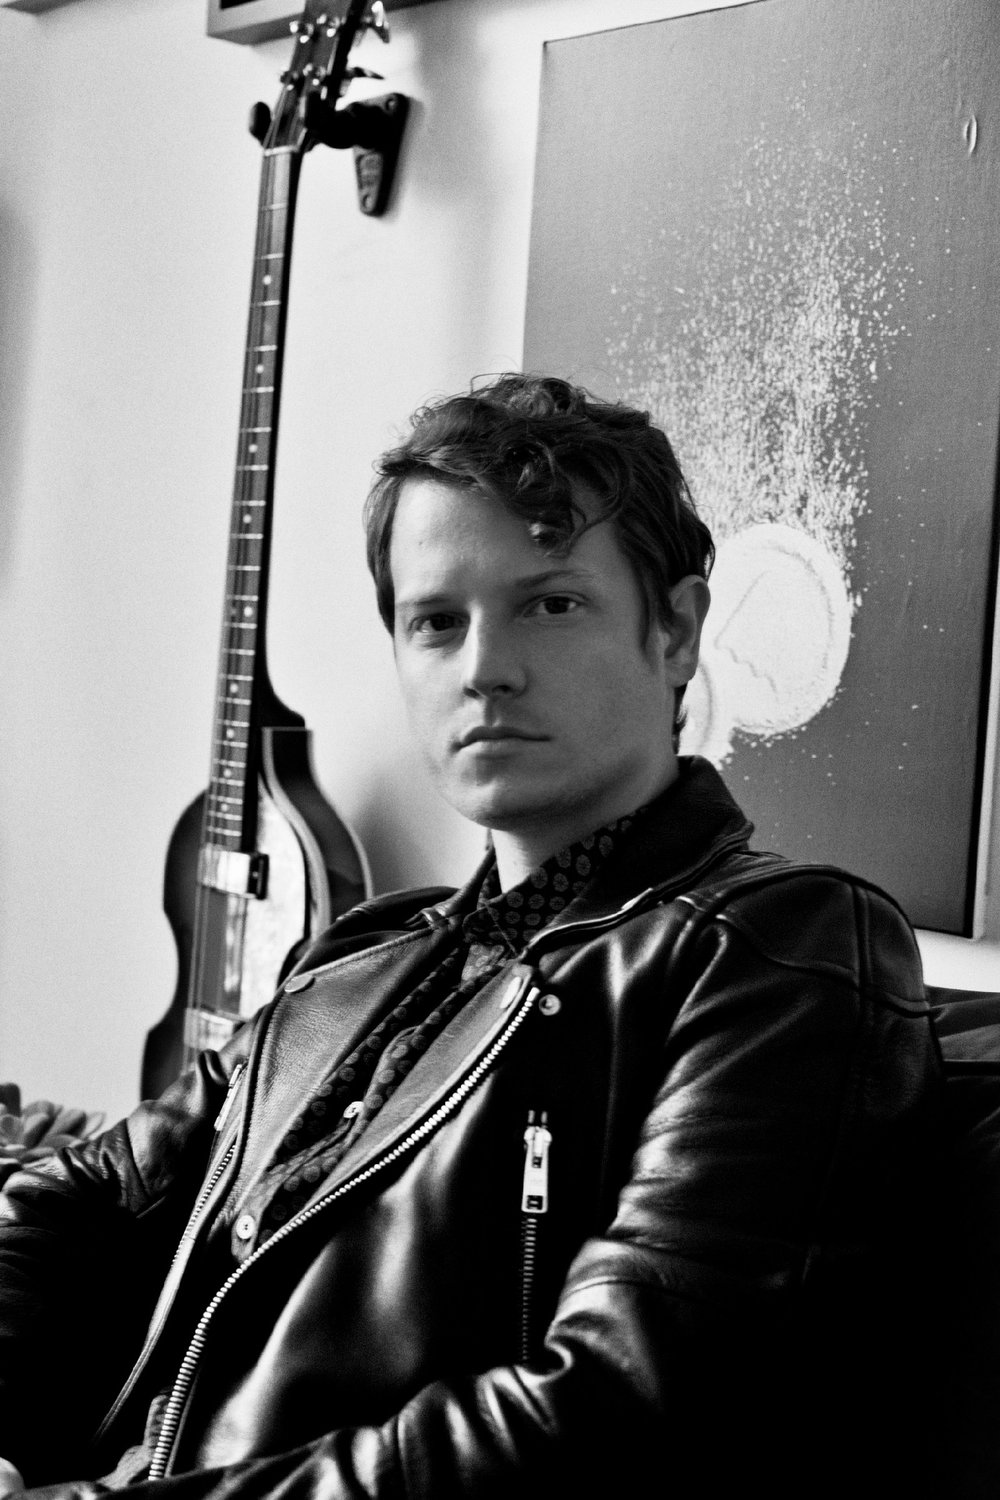 ISOM INNIS FROM FOSTER THE PEOPLE  PH. FILIP MILENKOVIC